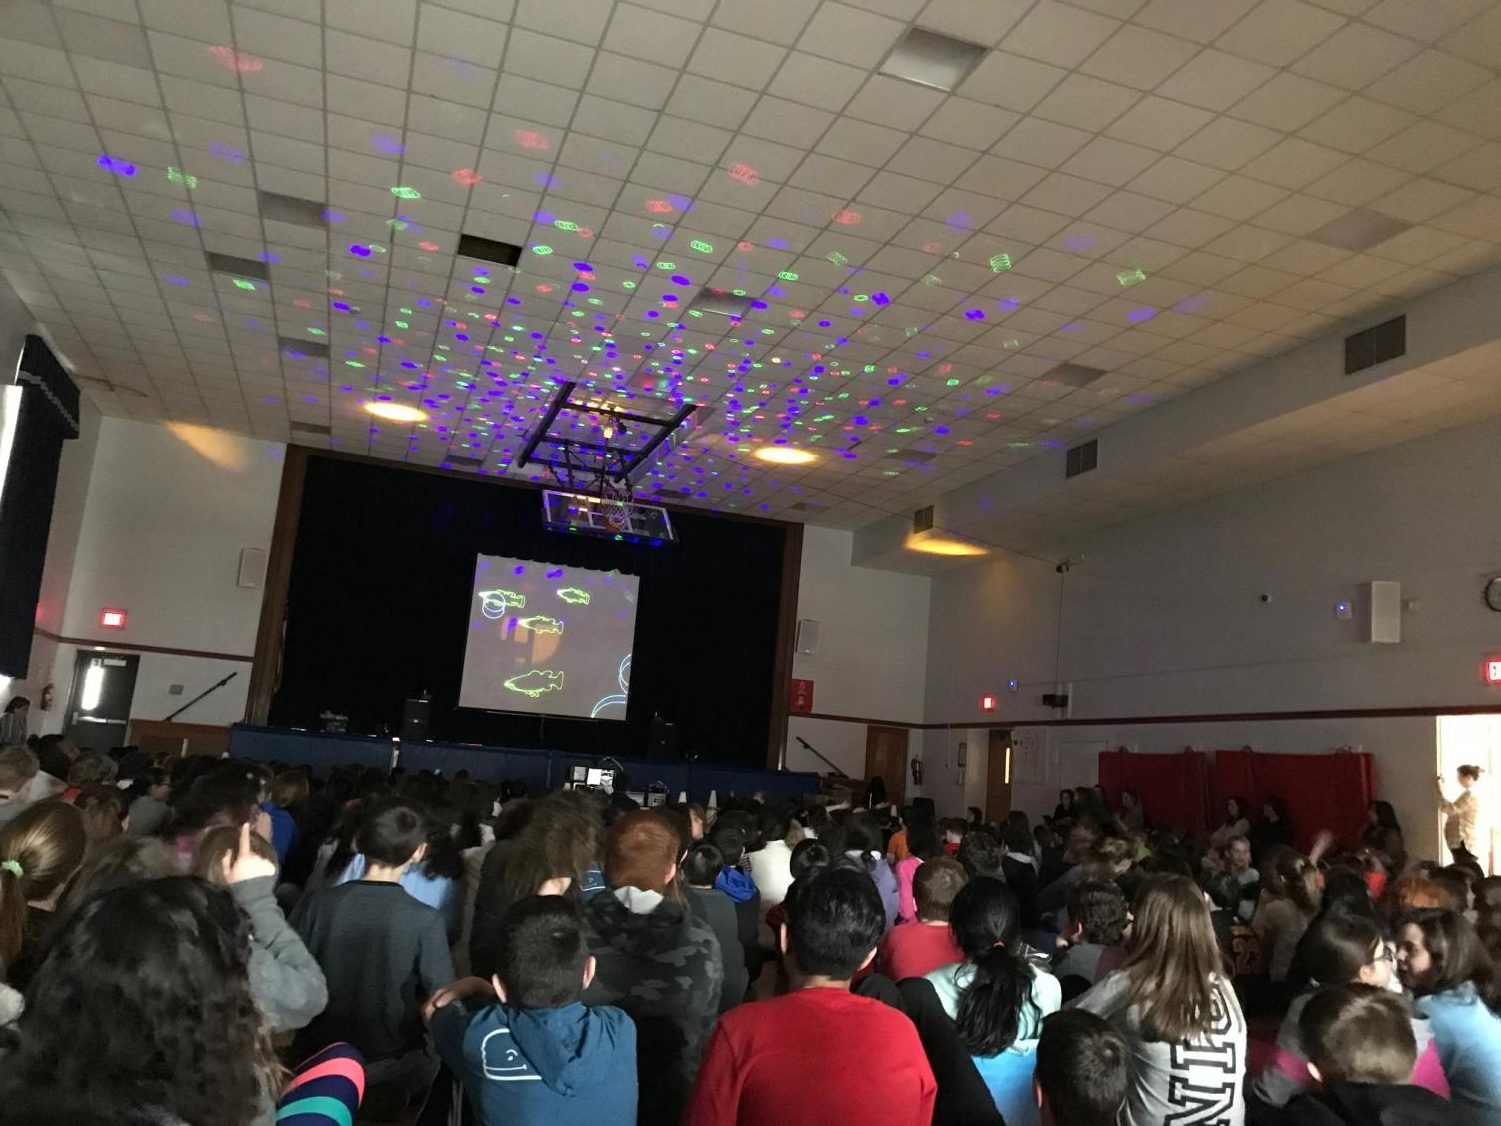 Students at Patrick M. Villano School enjoy the laser light show. This year, the message was about integrity.